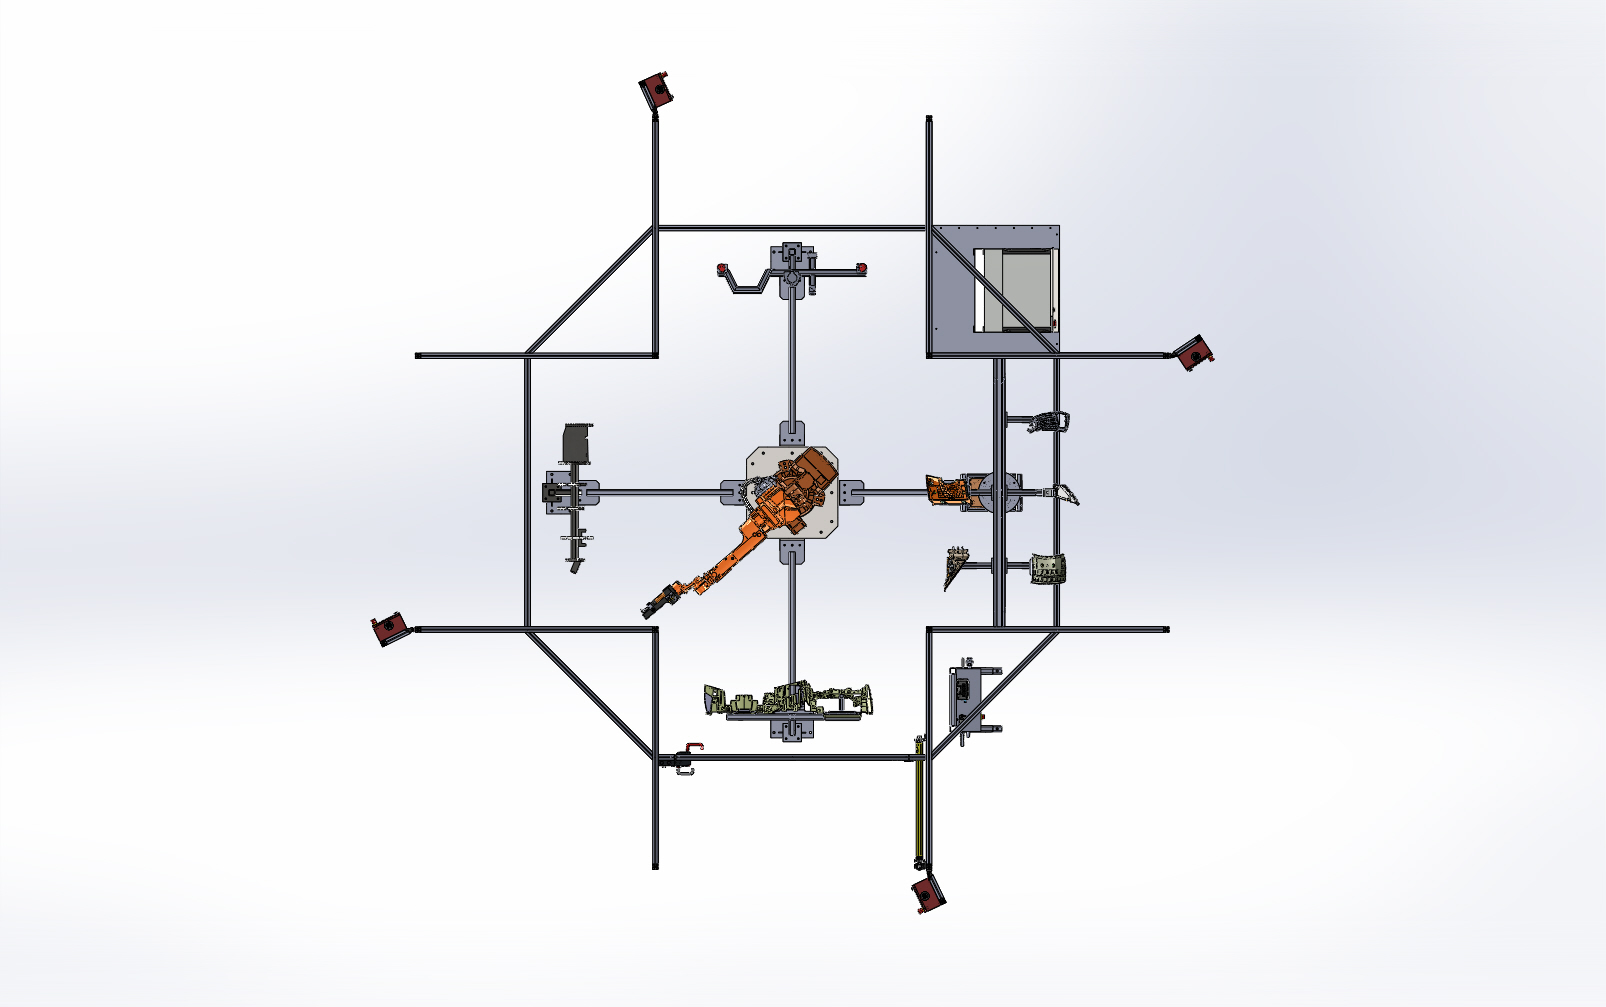 Fitz-Thors-Engineering_Robotic-Flame-Treatment_model.JPG